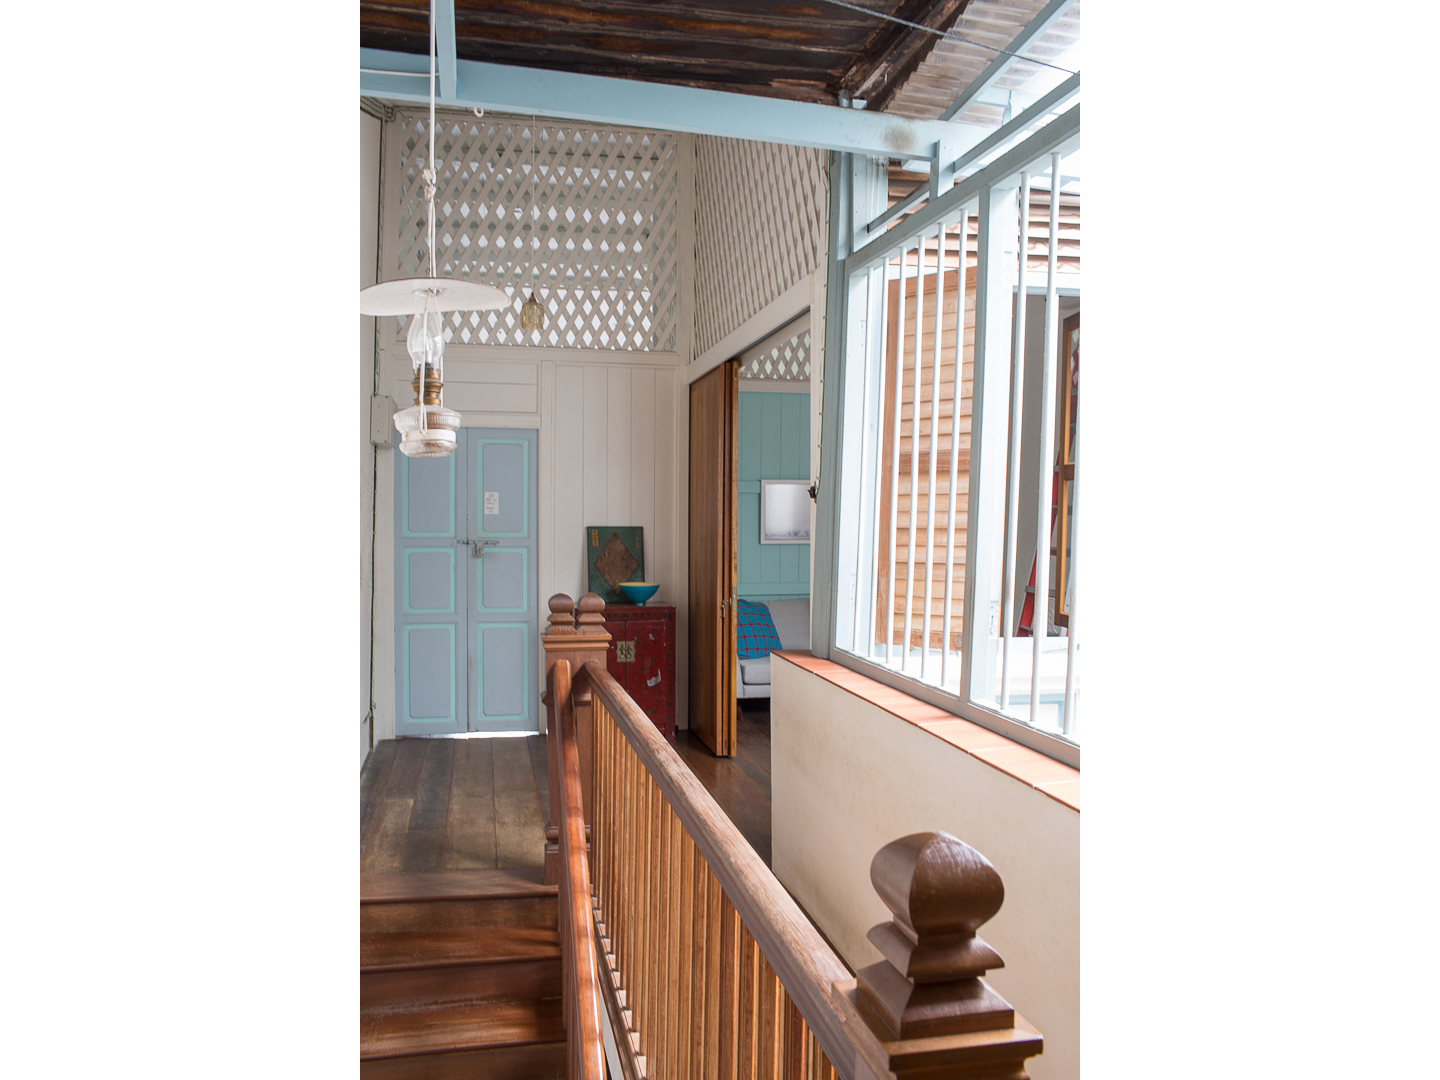 penang-heritage-house-for-sale-upper-floor-1